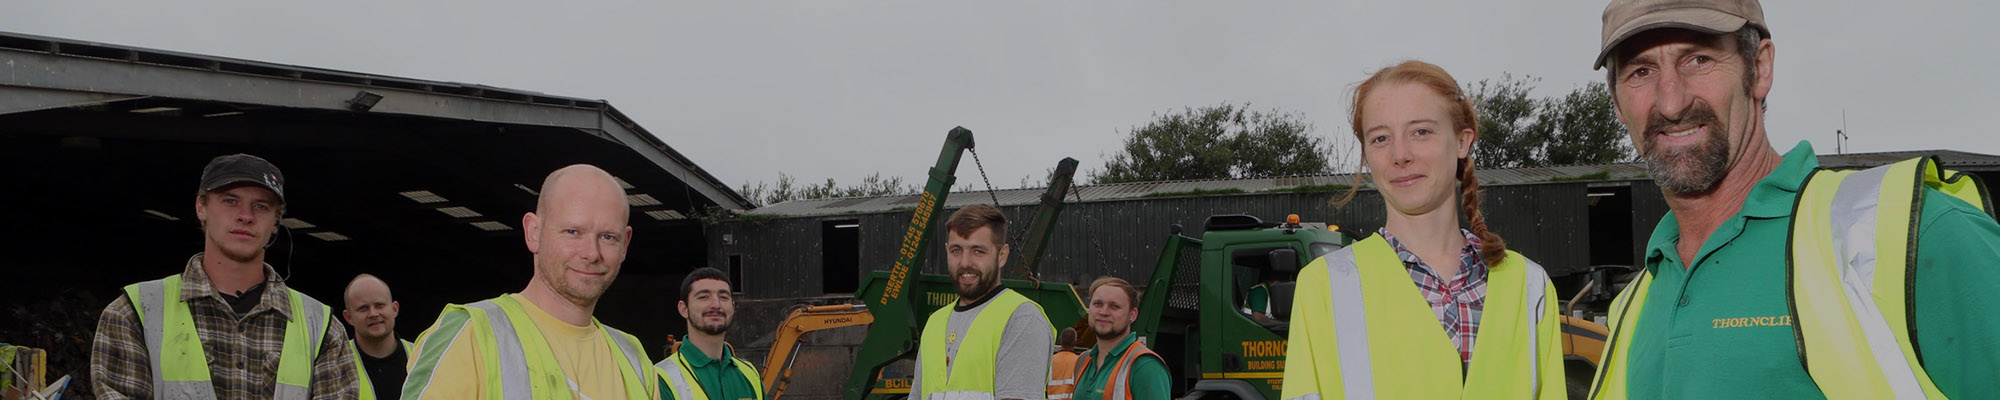 Cambrian Training Company Apprenticeships Sustainable Resource Management SRM Recycling